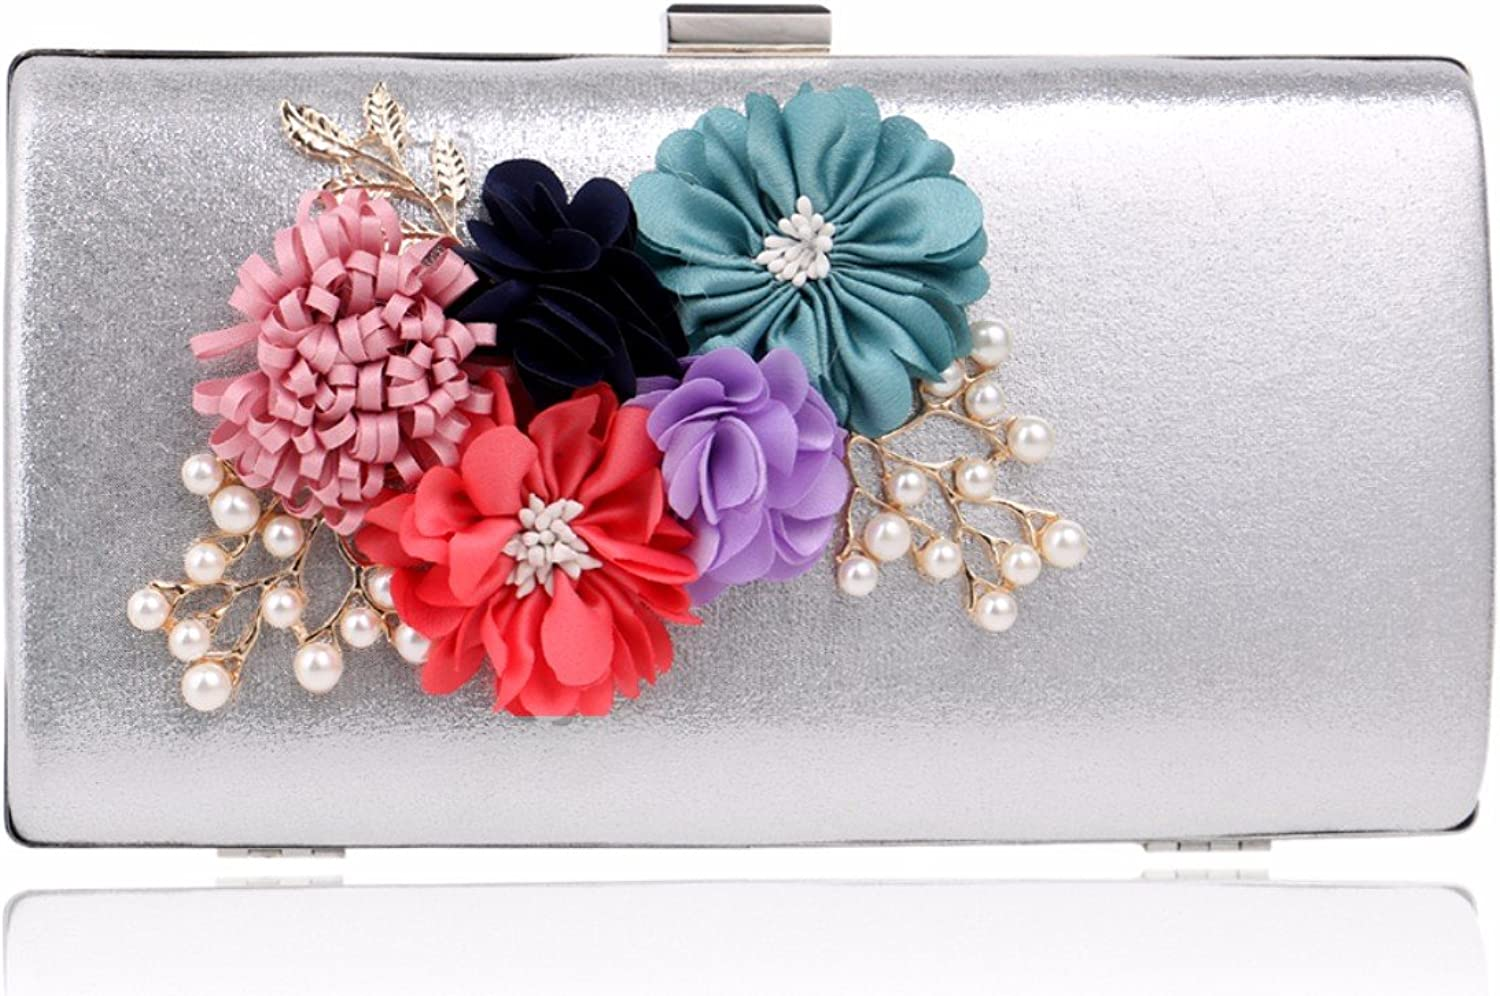 XJTNLB European and American New Flower Evening Dress Ladies Bag Luxury Dinner Clutch,Silvery